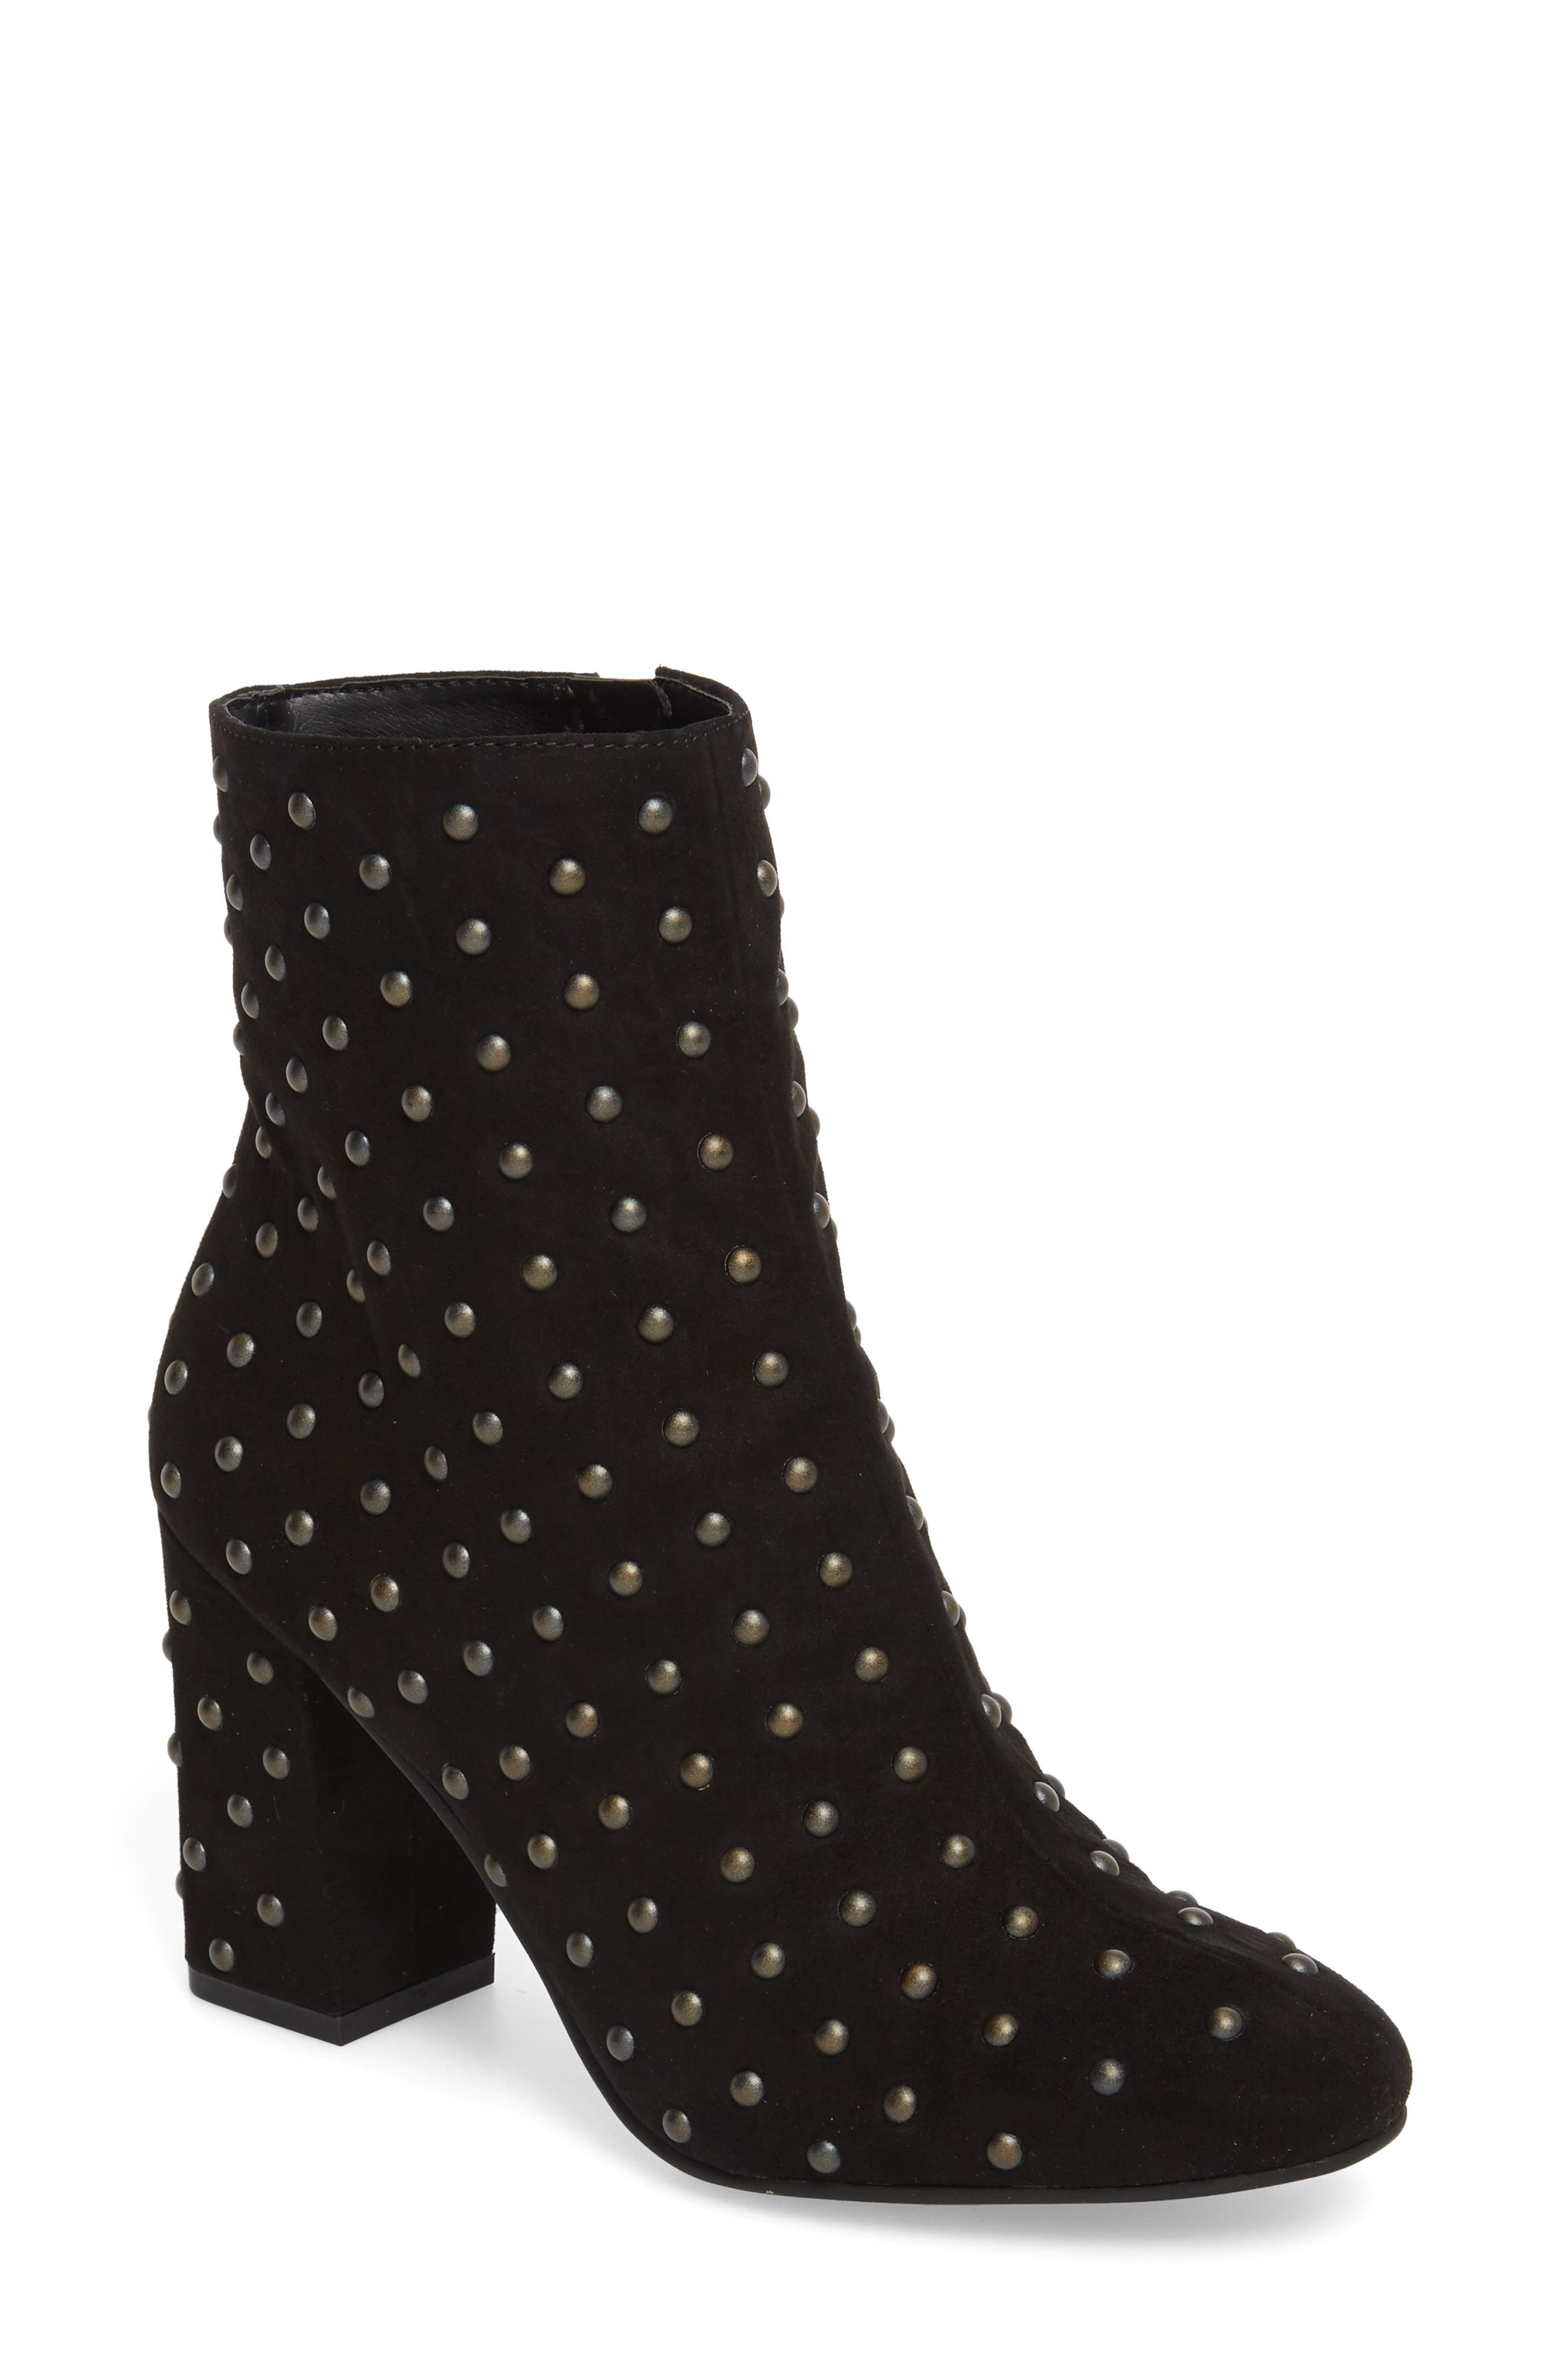 Westand Bootie,                         Main,                         color, Black Faux Suede